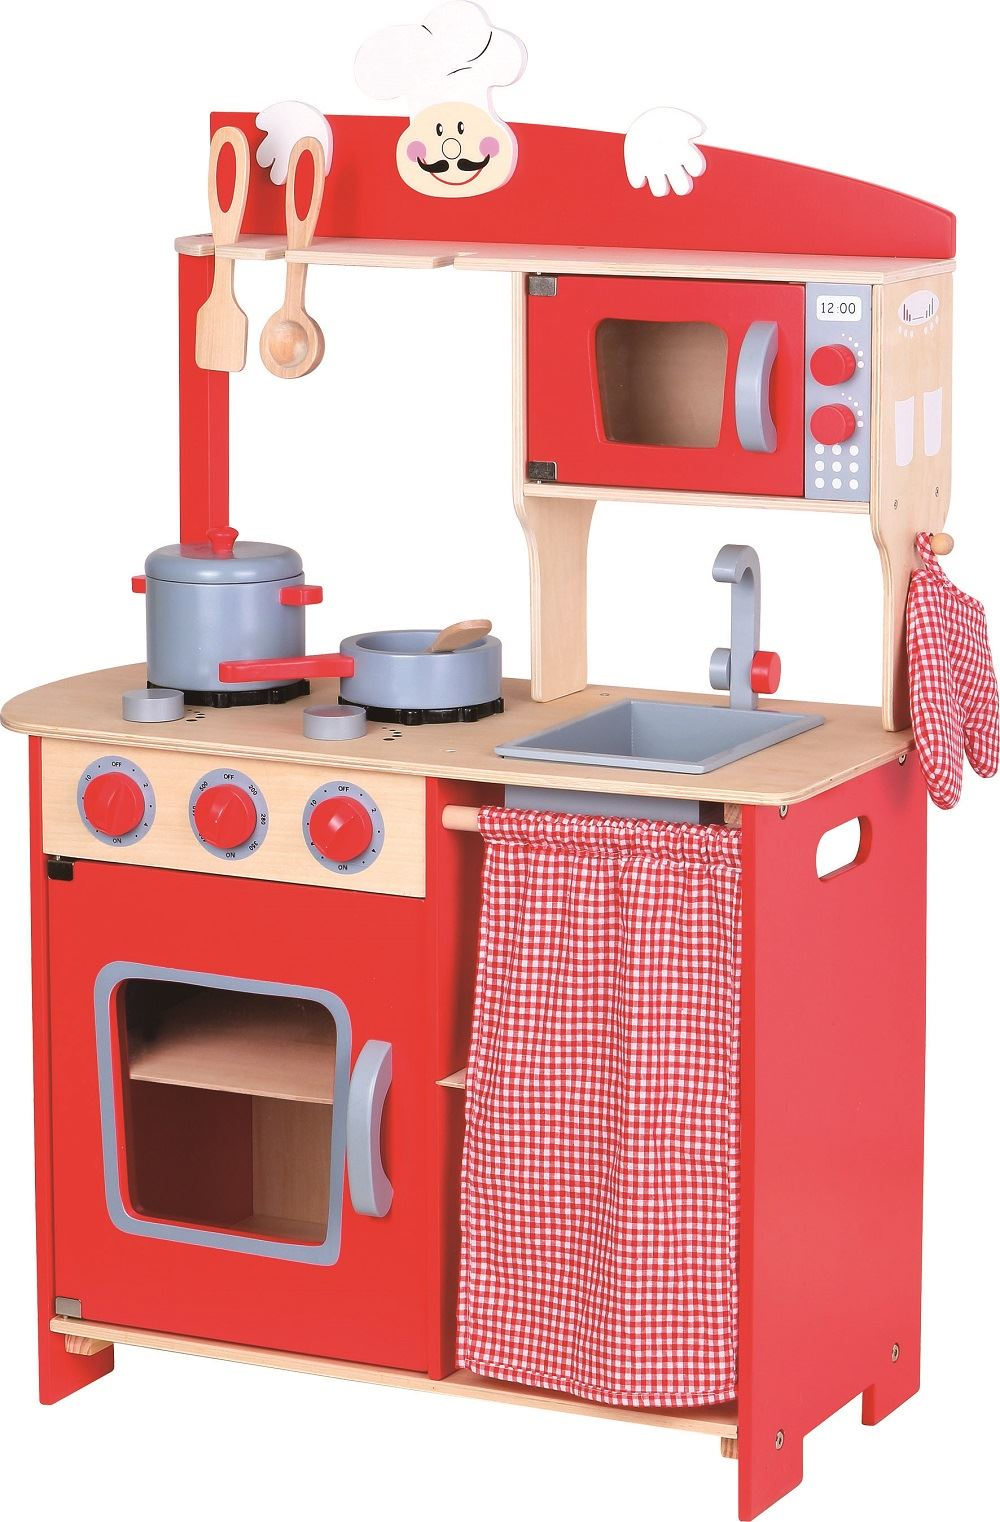 7f28a78f65fd Sentinel LELIN WOODEN WOOD CHILDRENS KIDS PRETEND PLAY SAFFRON KITCHEN  COOKING OVEN TOY